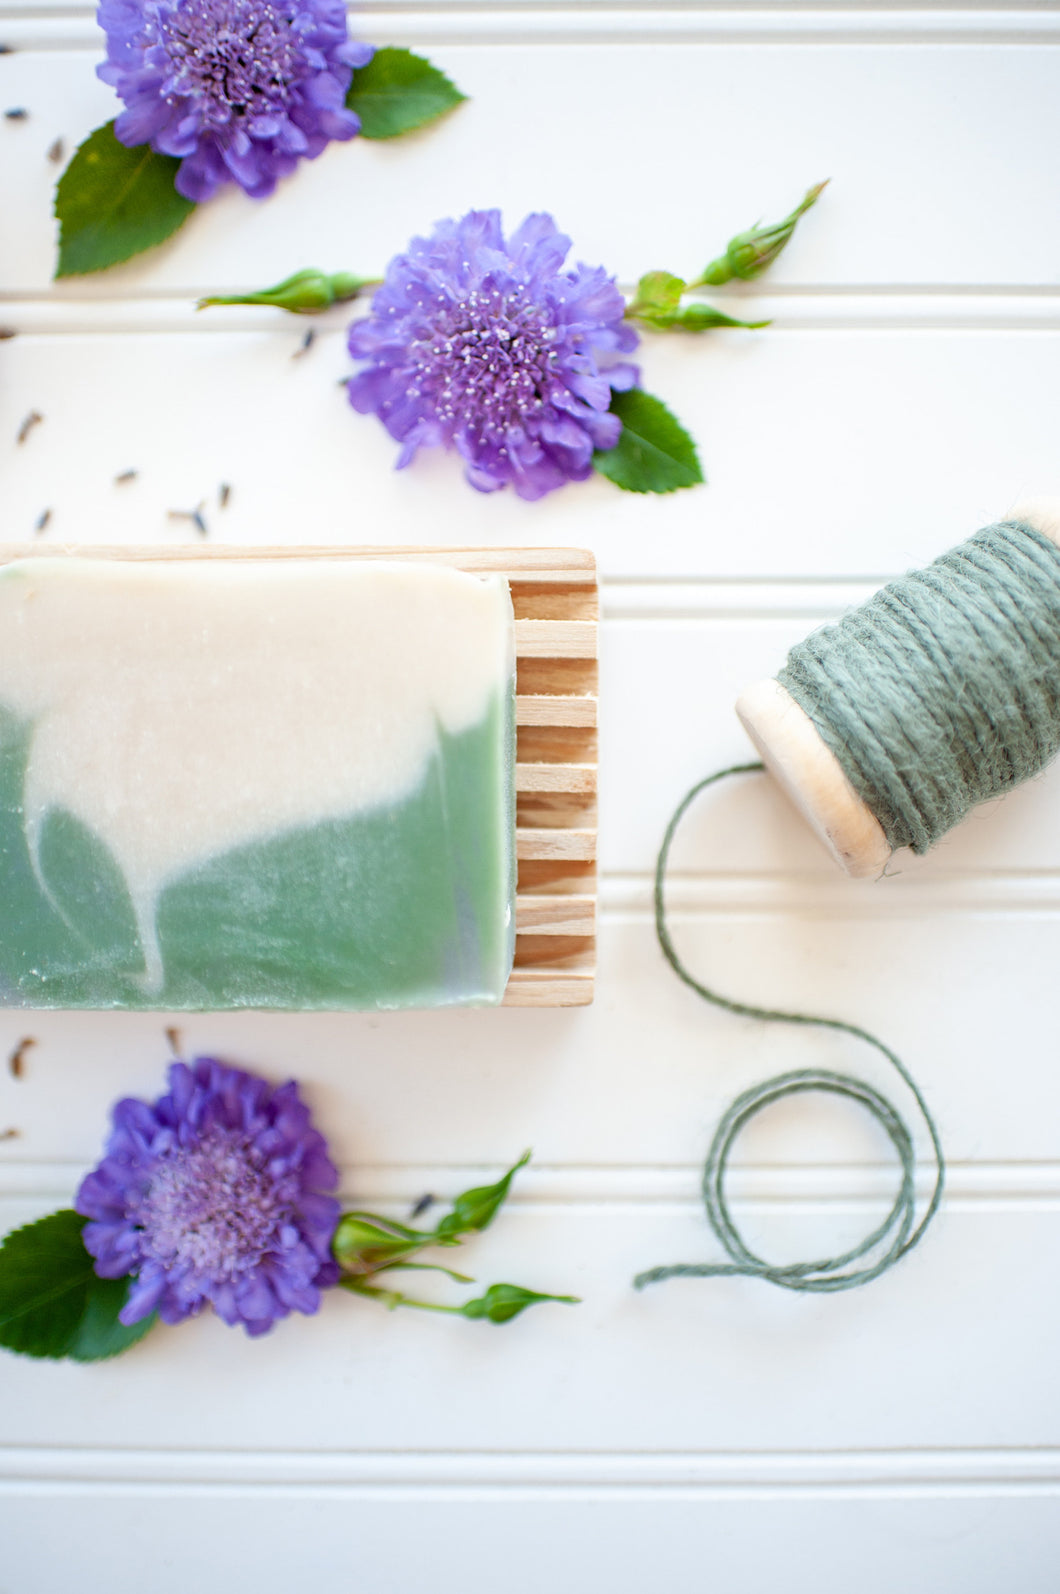 Artisan Soaps and Shampoo Bars